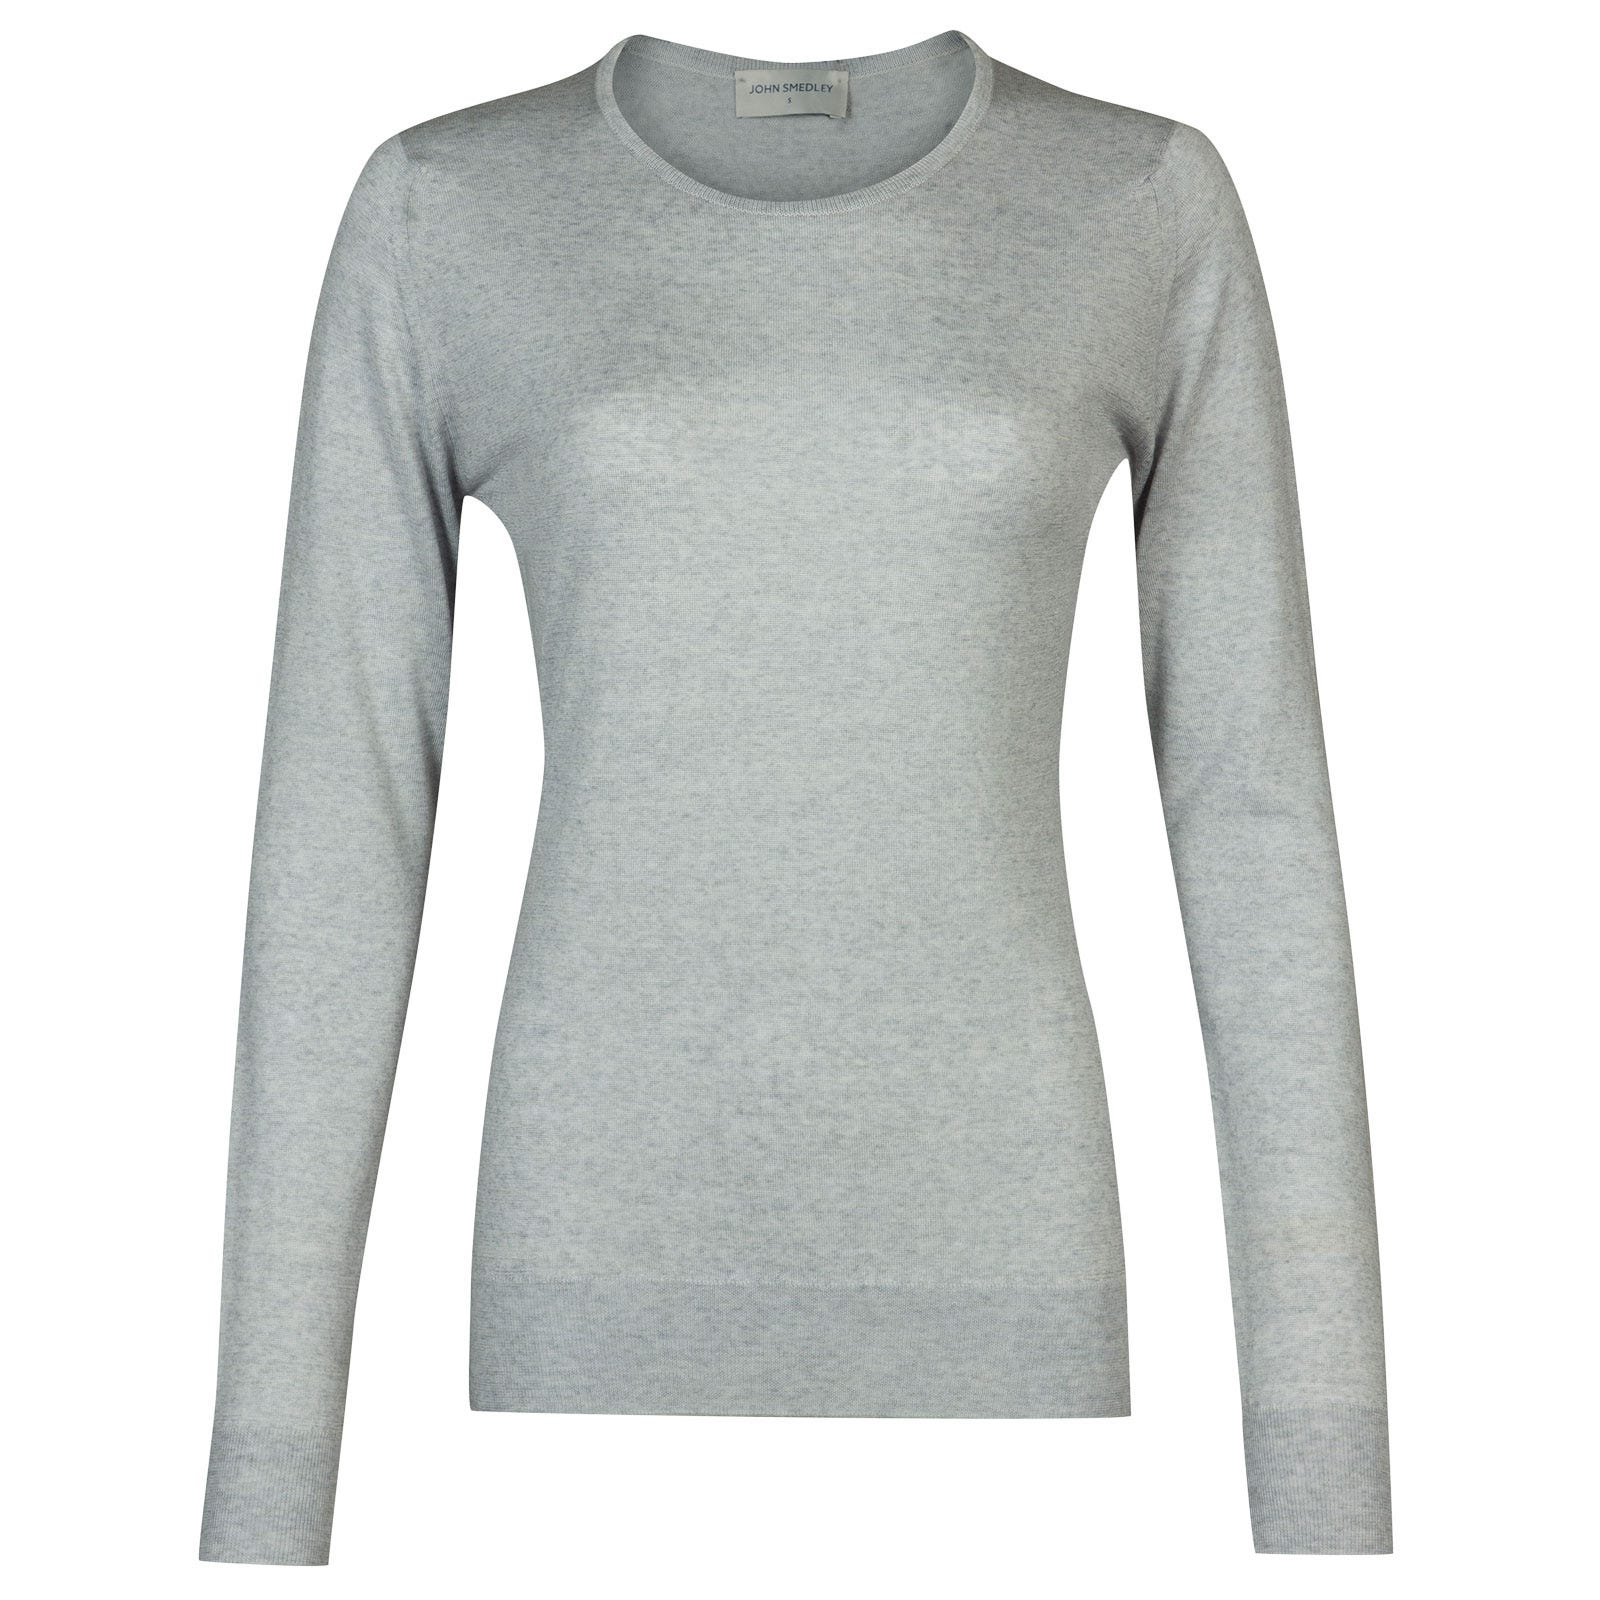 John Smedley geranium Merino Wool Sweater in Bardot Grey-S